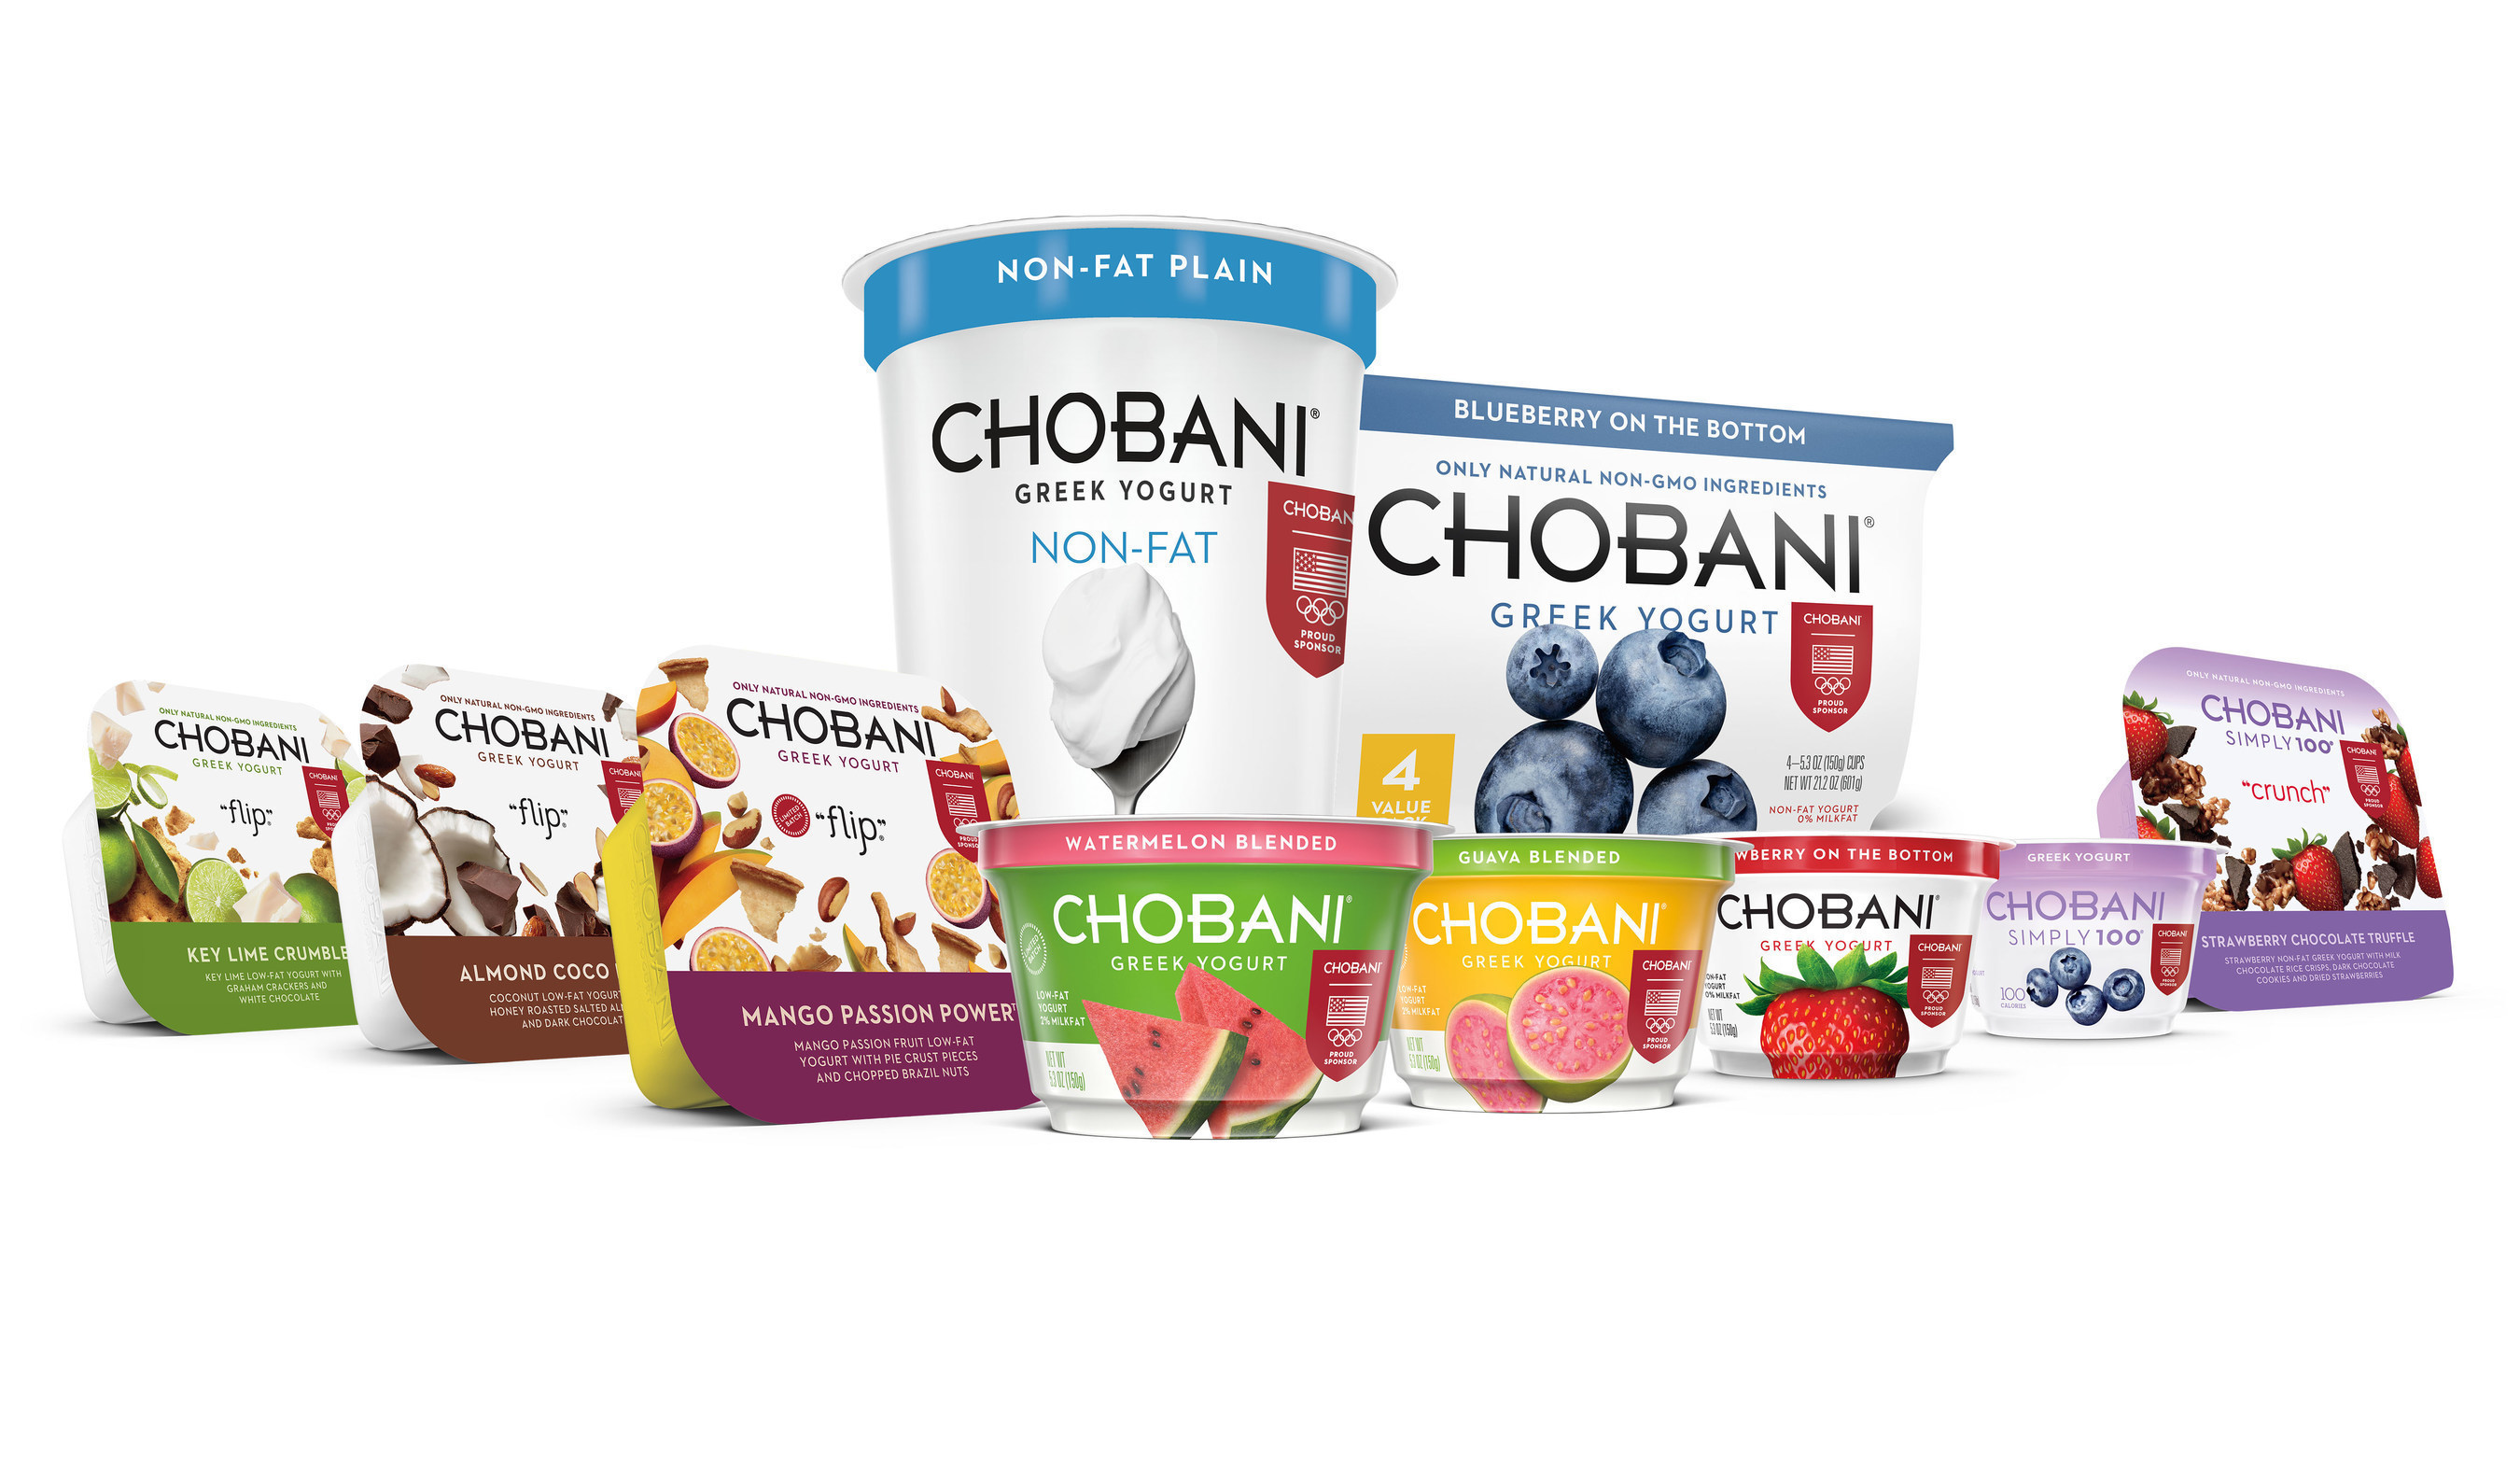 """Chobani products across multiple product lines including Chobani """"Flip""""(tm) and Chobani Simply 100(r) products will adorn the official Team USA shield and Olympic rings on pack to denote the partnership."""